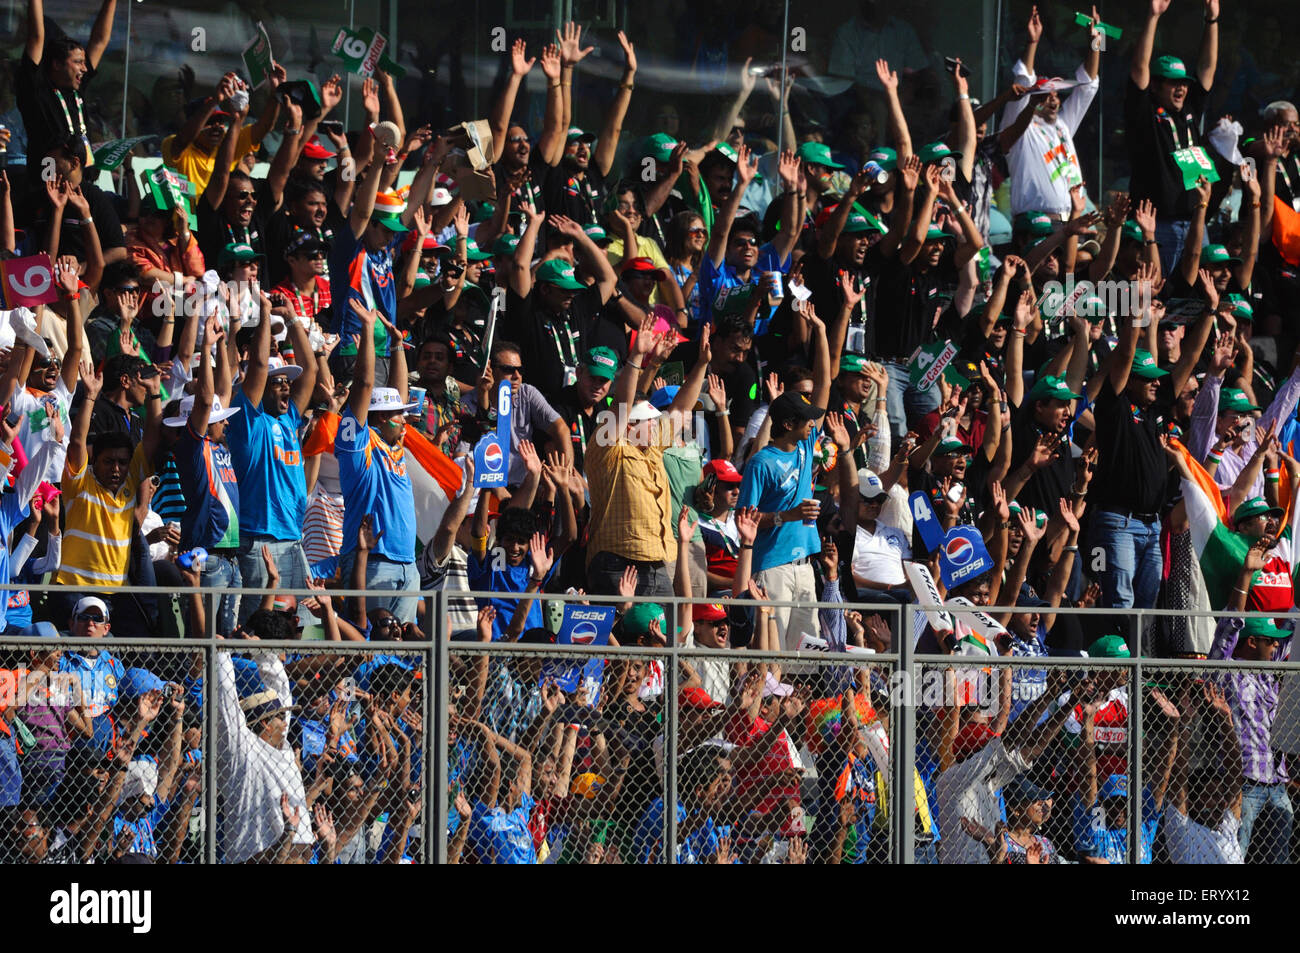 fans Mexican wave ICC Cricket World Cup finals Sri Lanka played Wankhede stadium Mumbai - Stock Image